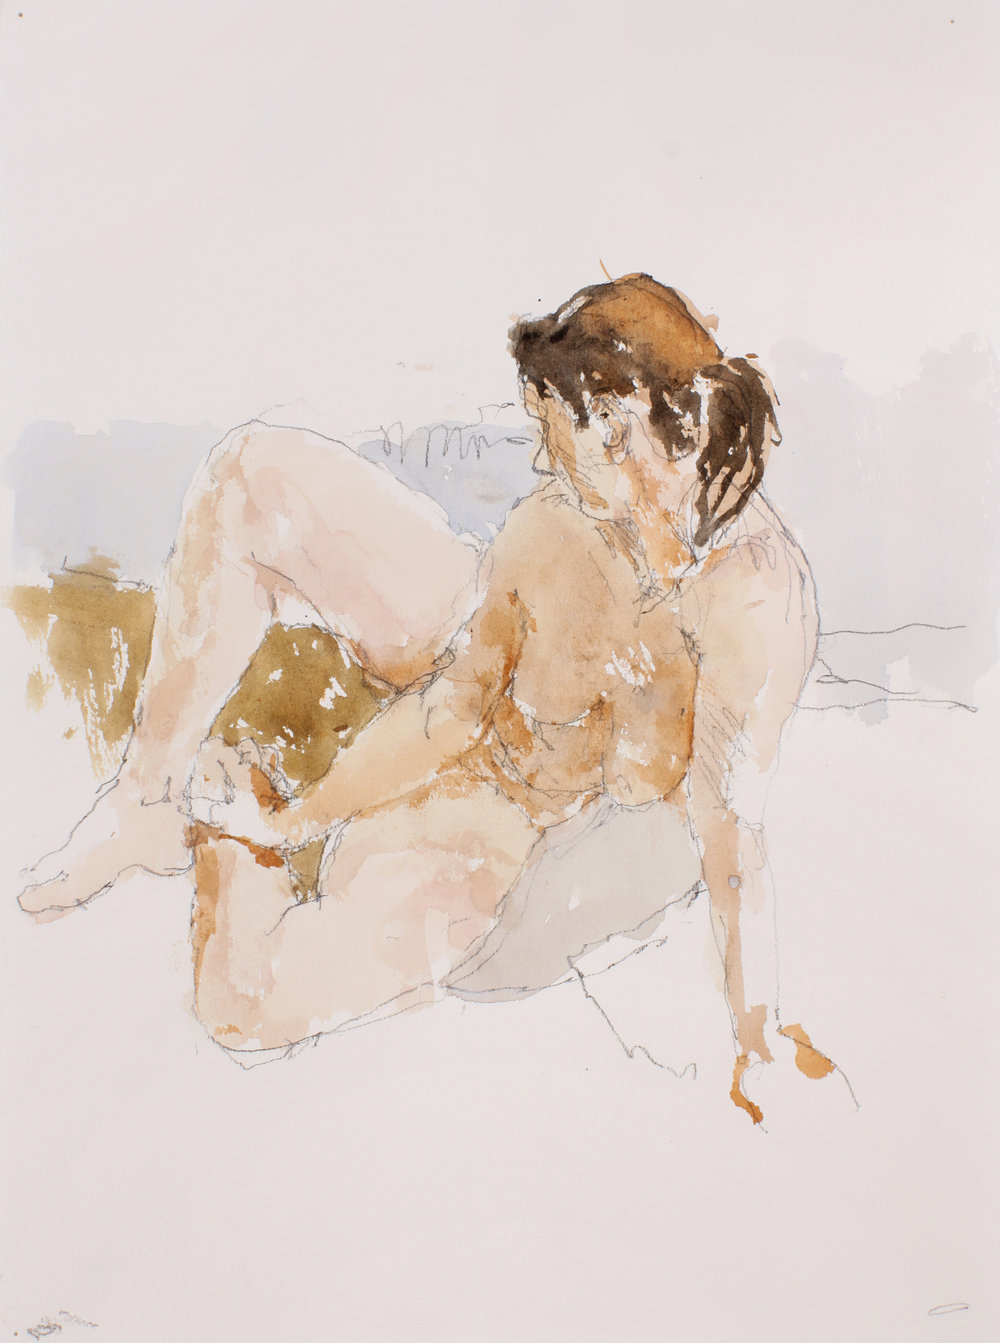 2008_Seated_Nude_with_Splayed_Legs_in_Semi_Profile_watercolour_and_pencil_on_paper_15x11in_WPF568.jpg